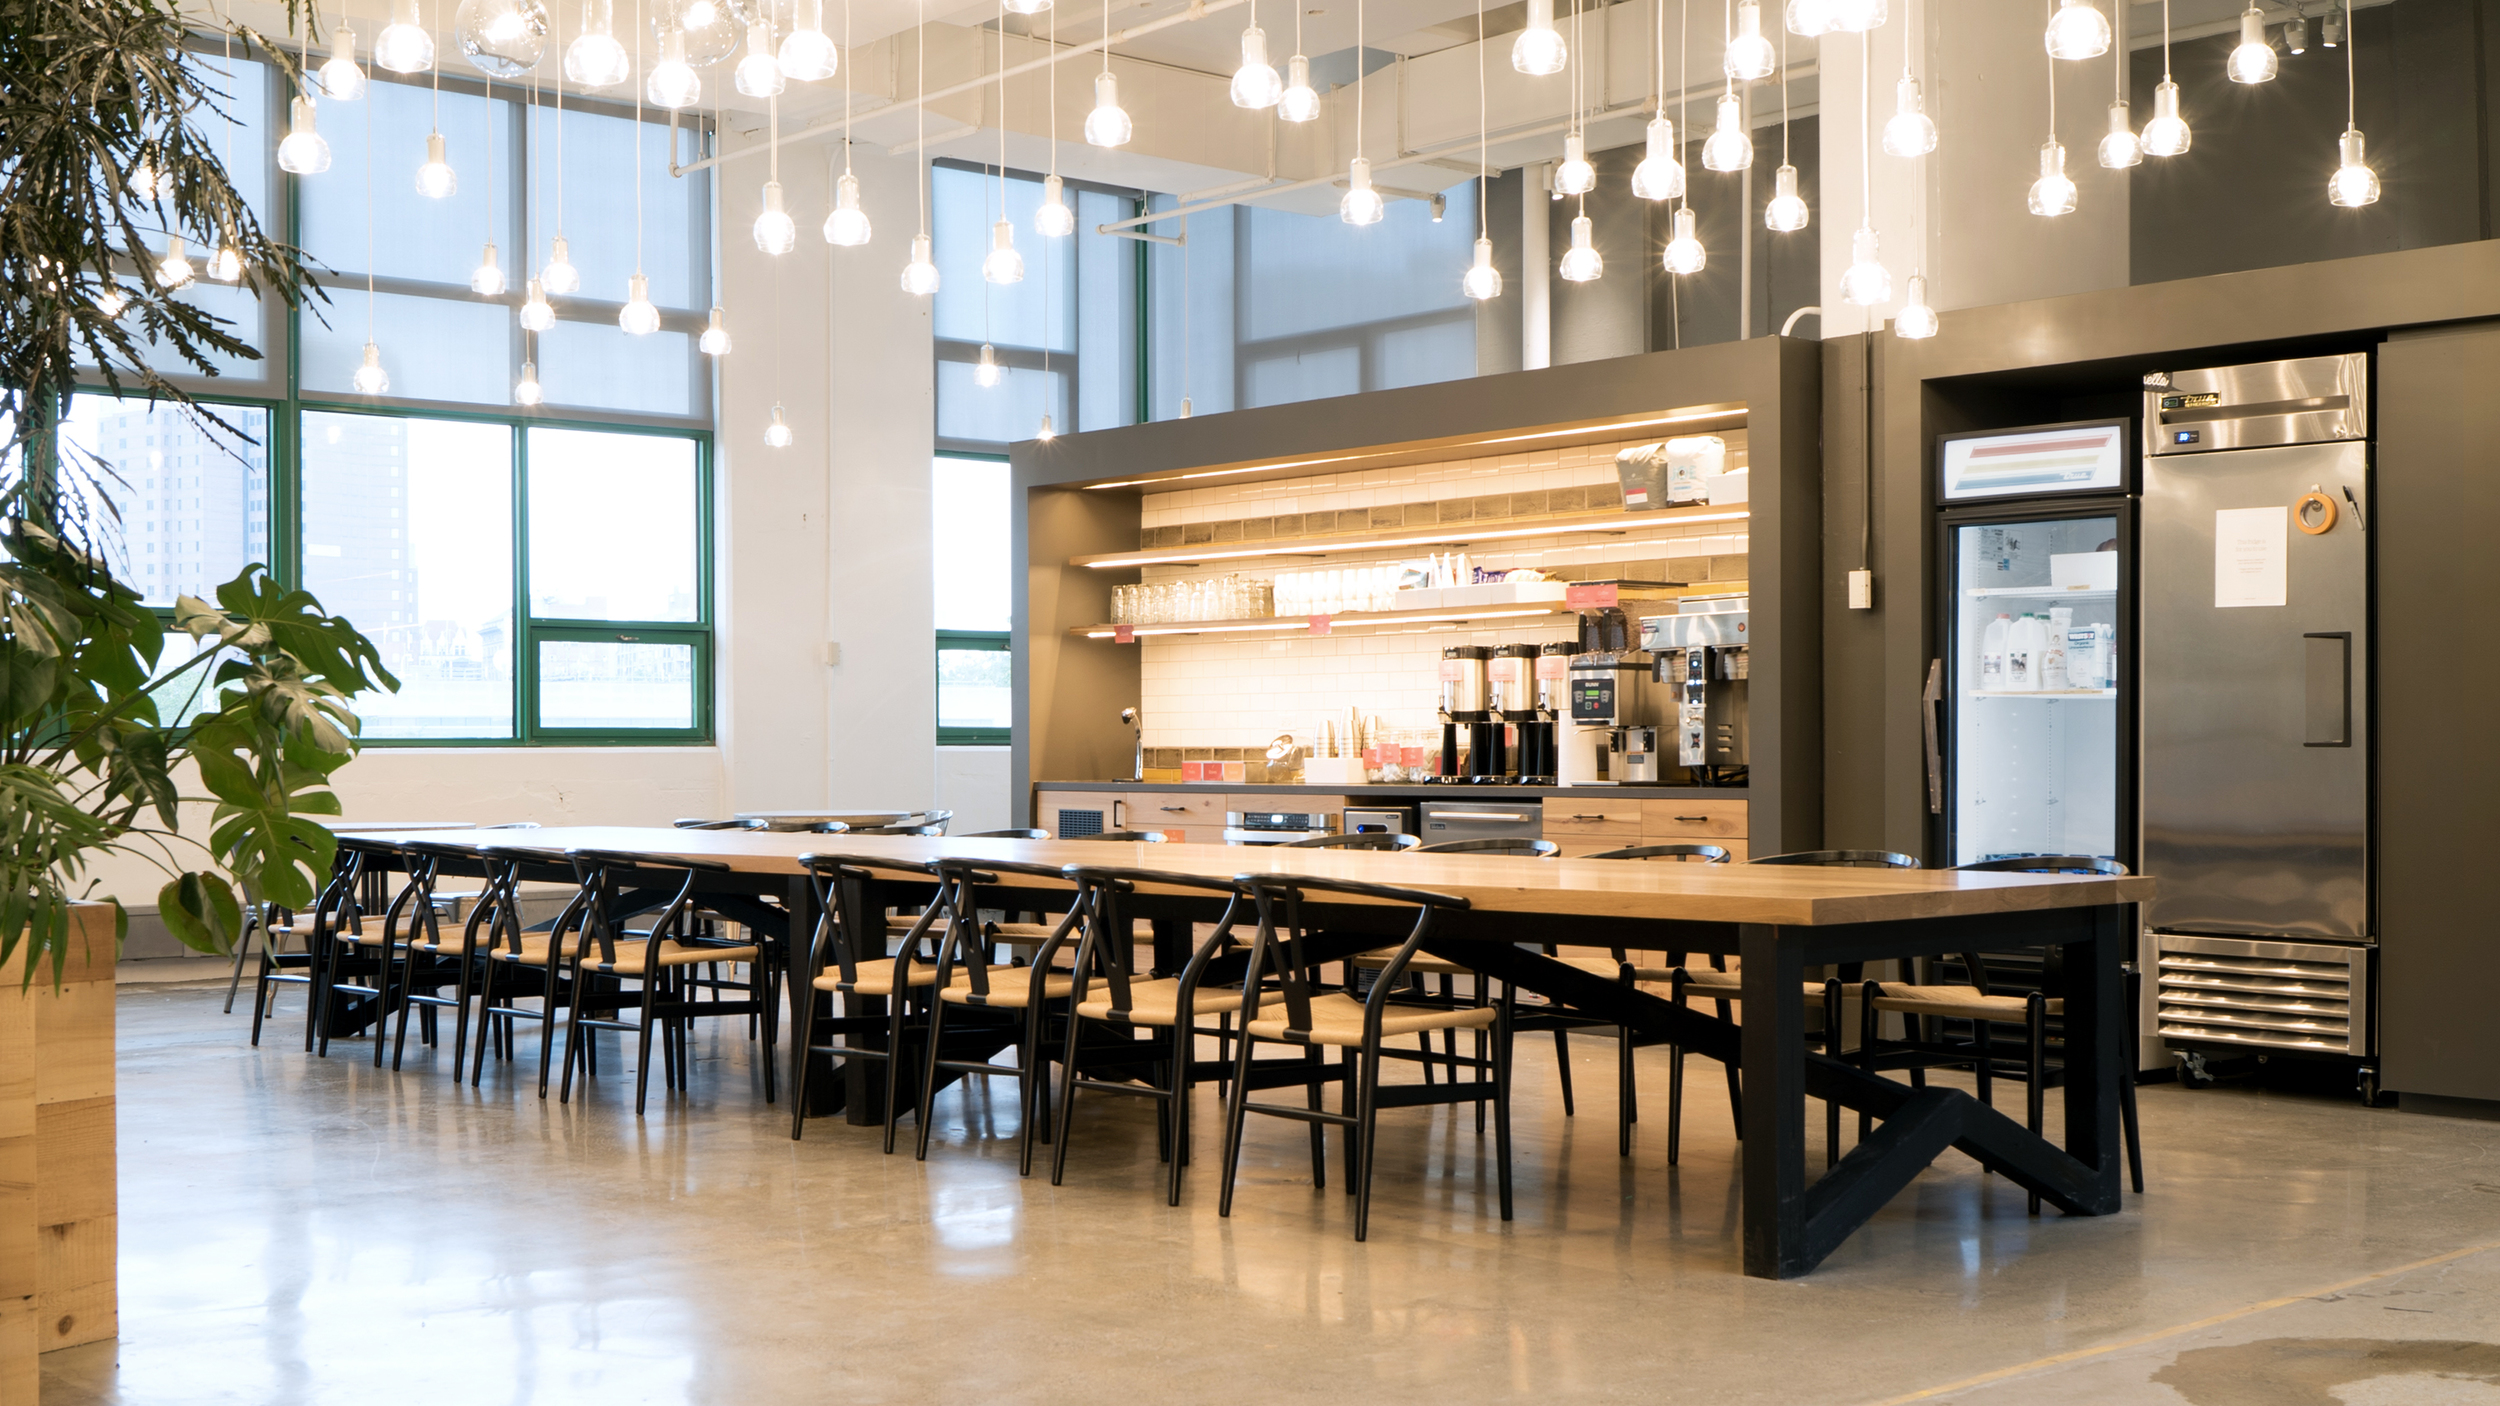 ONE OF TWO COMMUNAL DINING SPACES AT THE NEW ETSY HQ